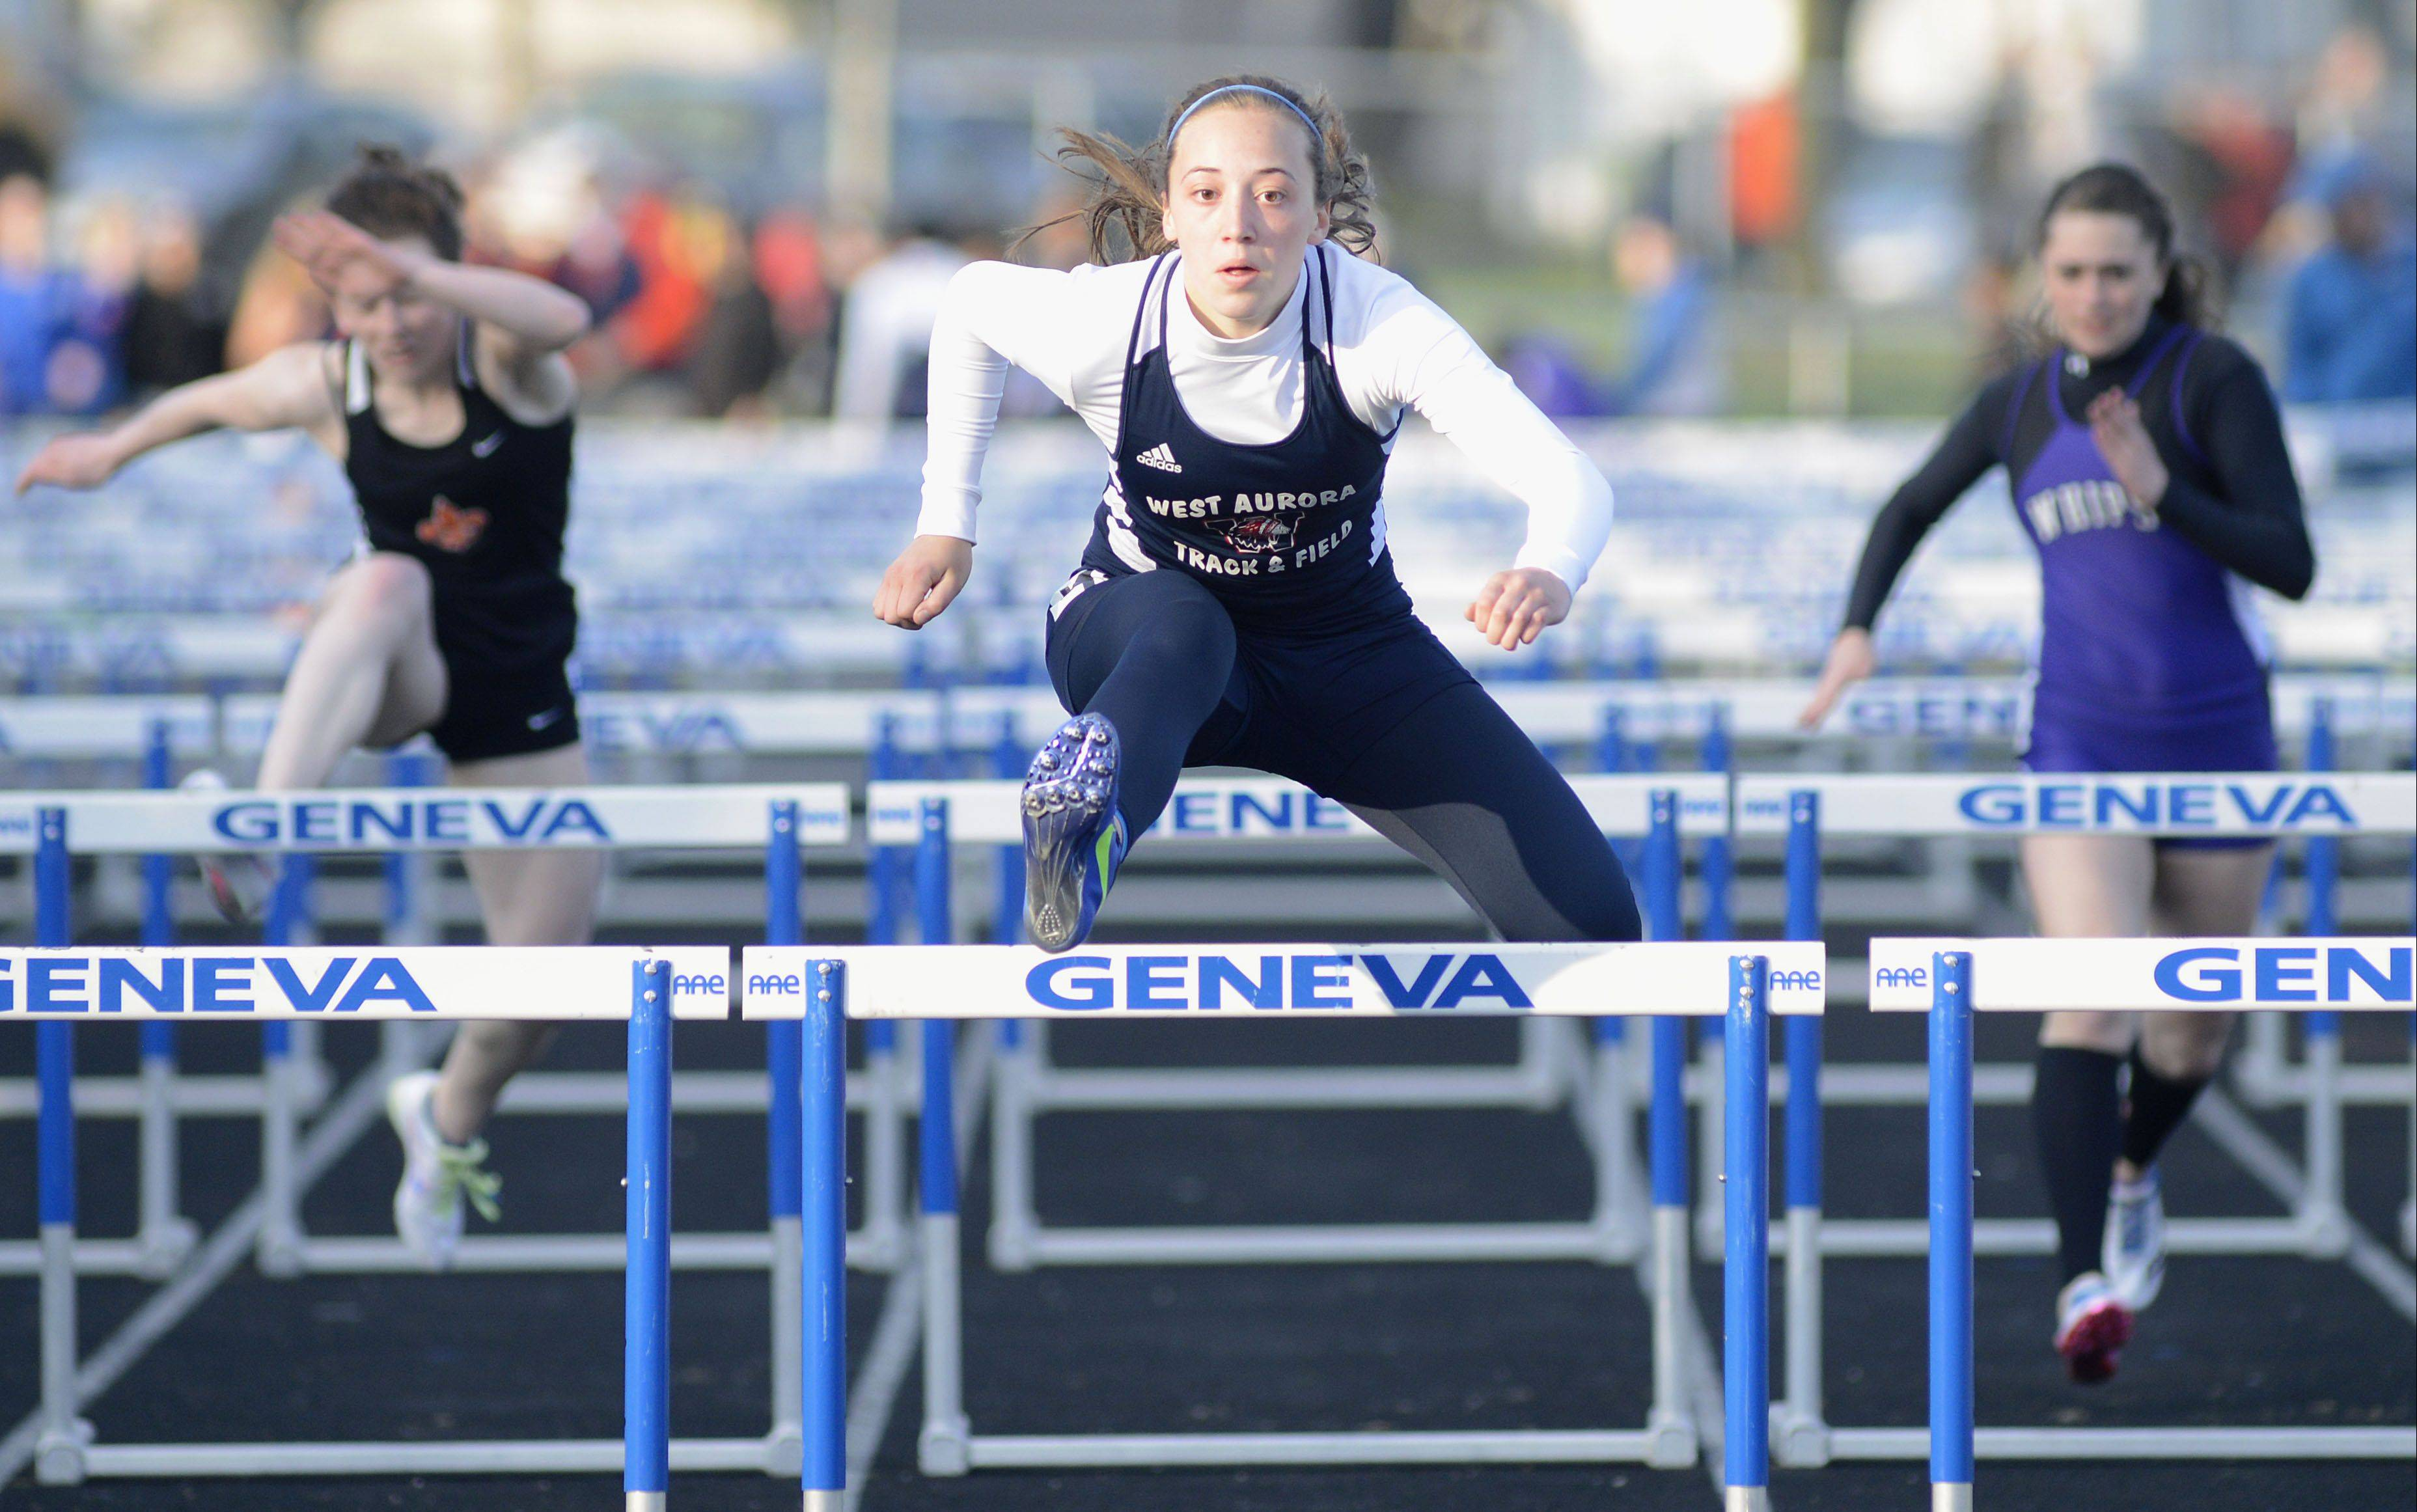 West Aurora's Emma Spagnola won the 100 meter hurdles at the Kane County meet Friday in Geneva.